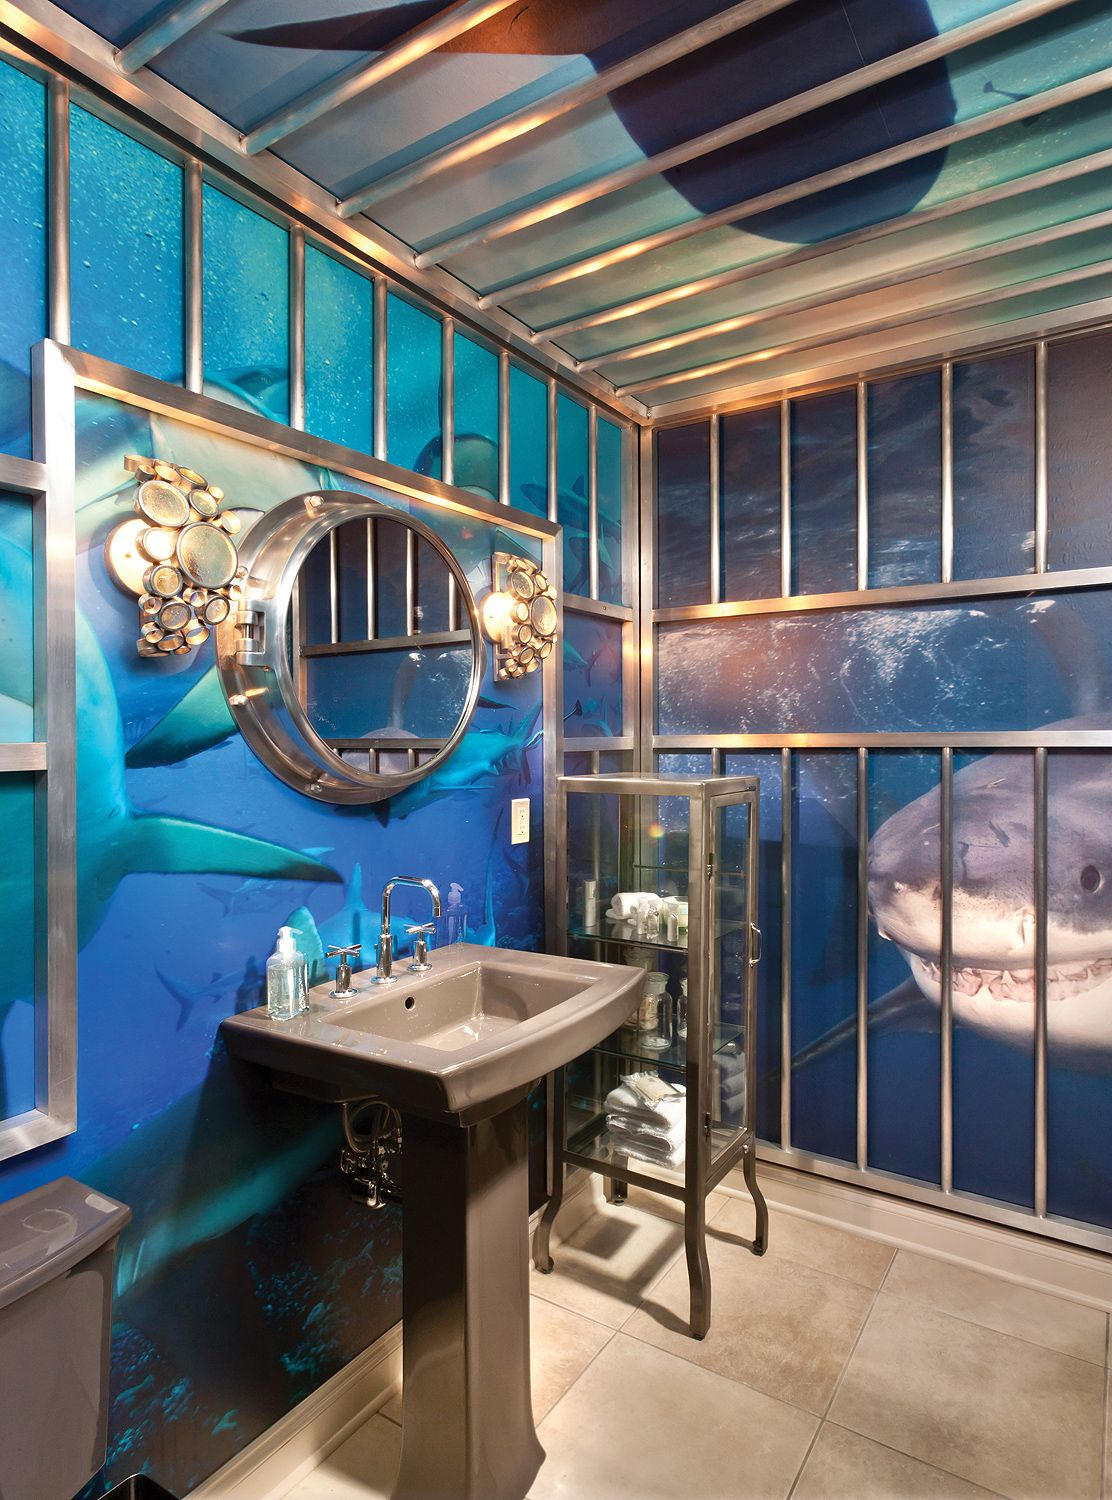 World S Coolest Bathrooms Sea Bathroom Decor Ocean Bathroom Decor Ocean Bathroom